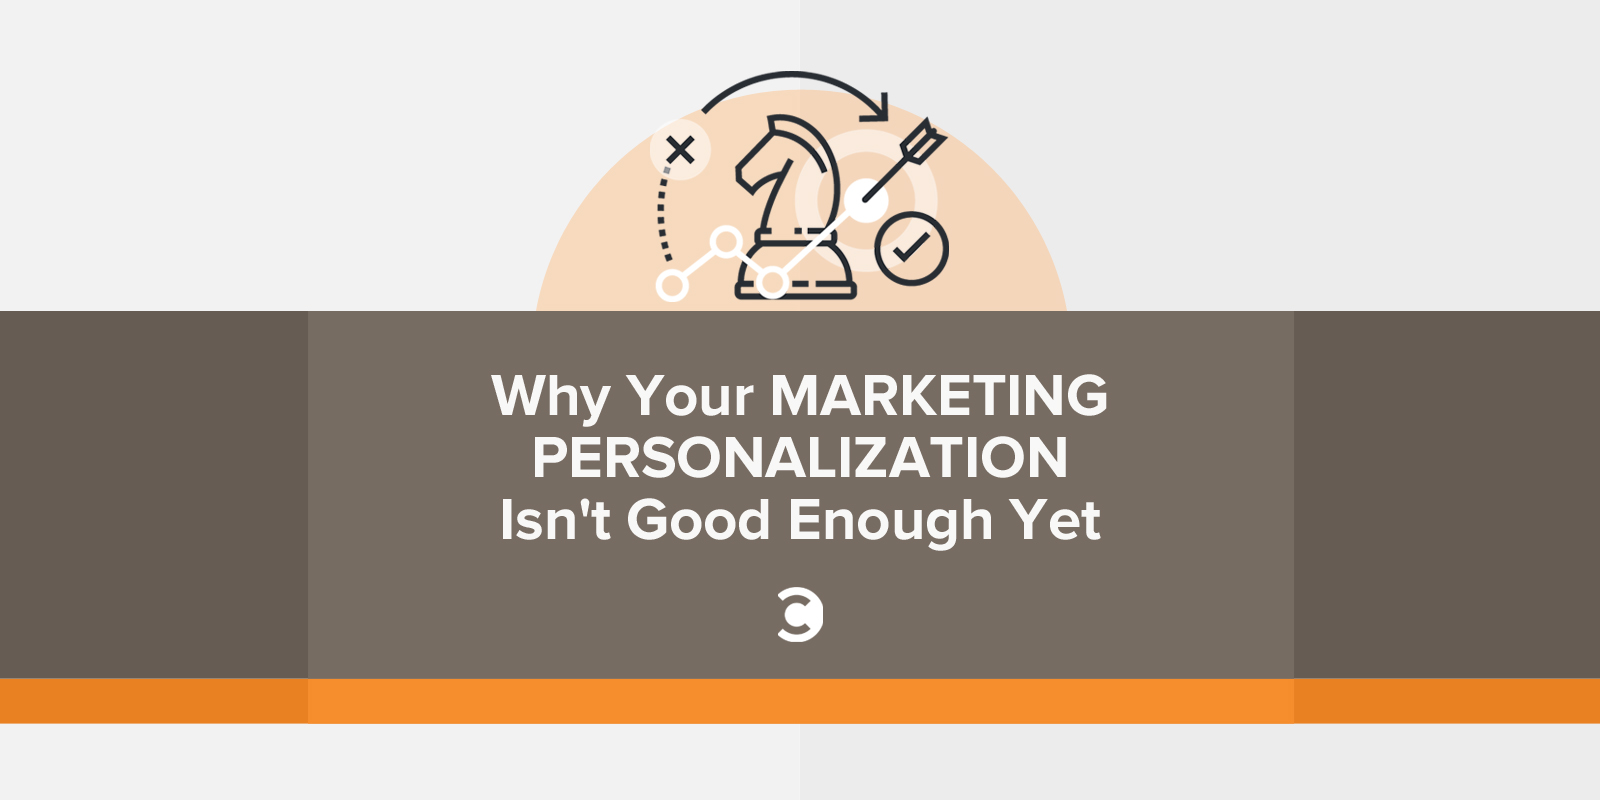 Why Your Marketing Personalization Isn't Good Enough Yet